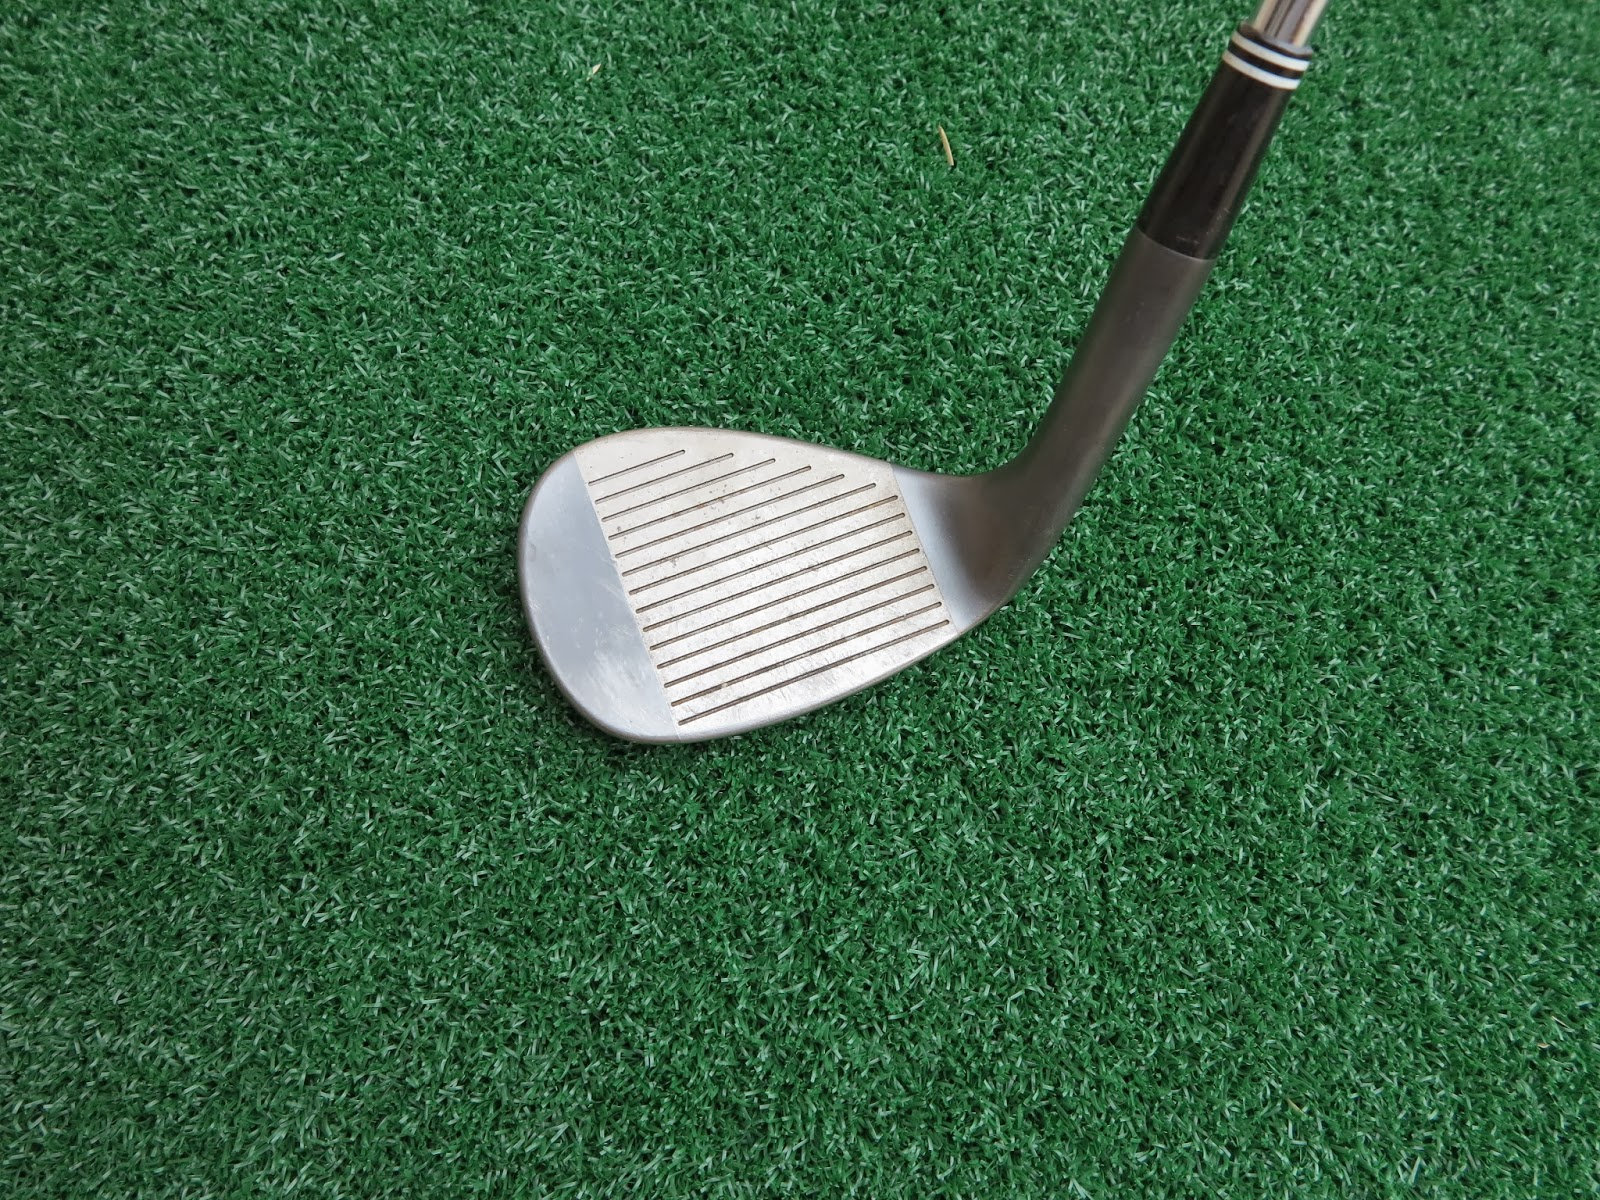 how to hit low wedge shots